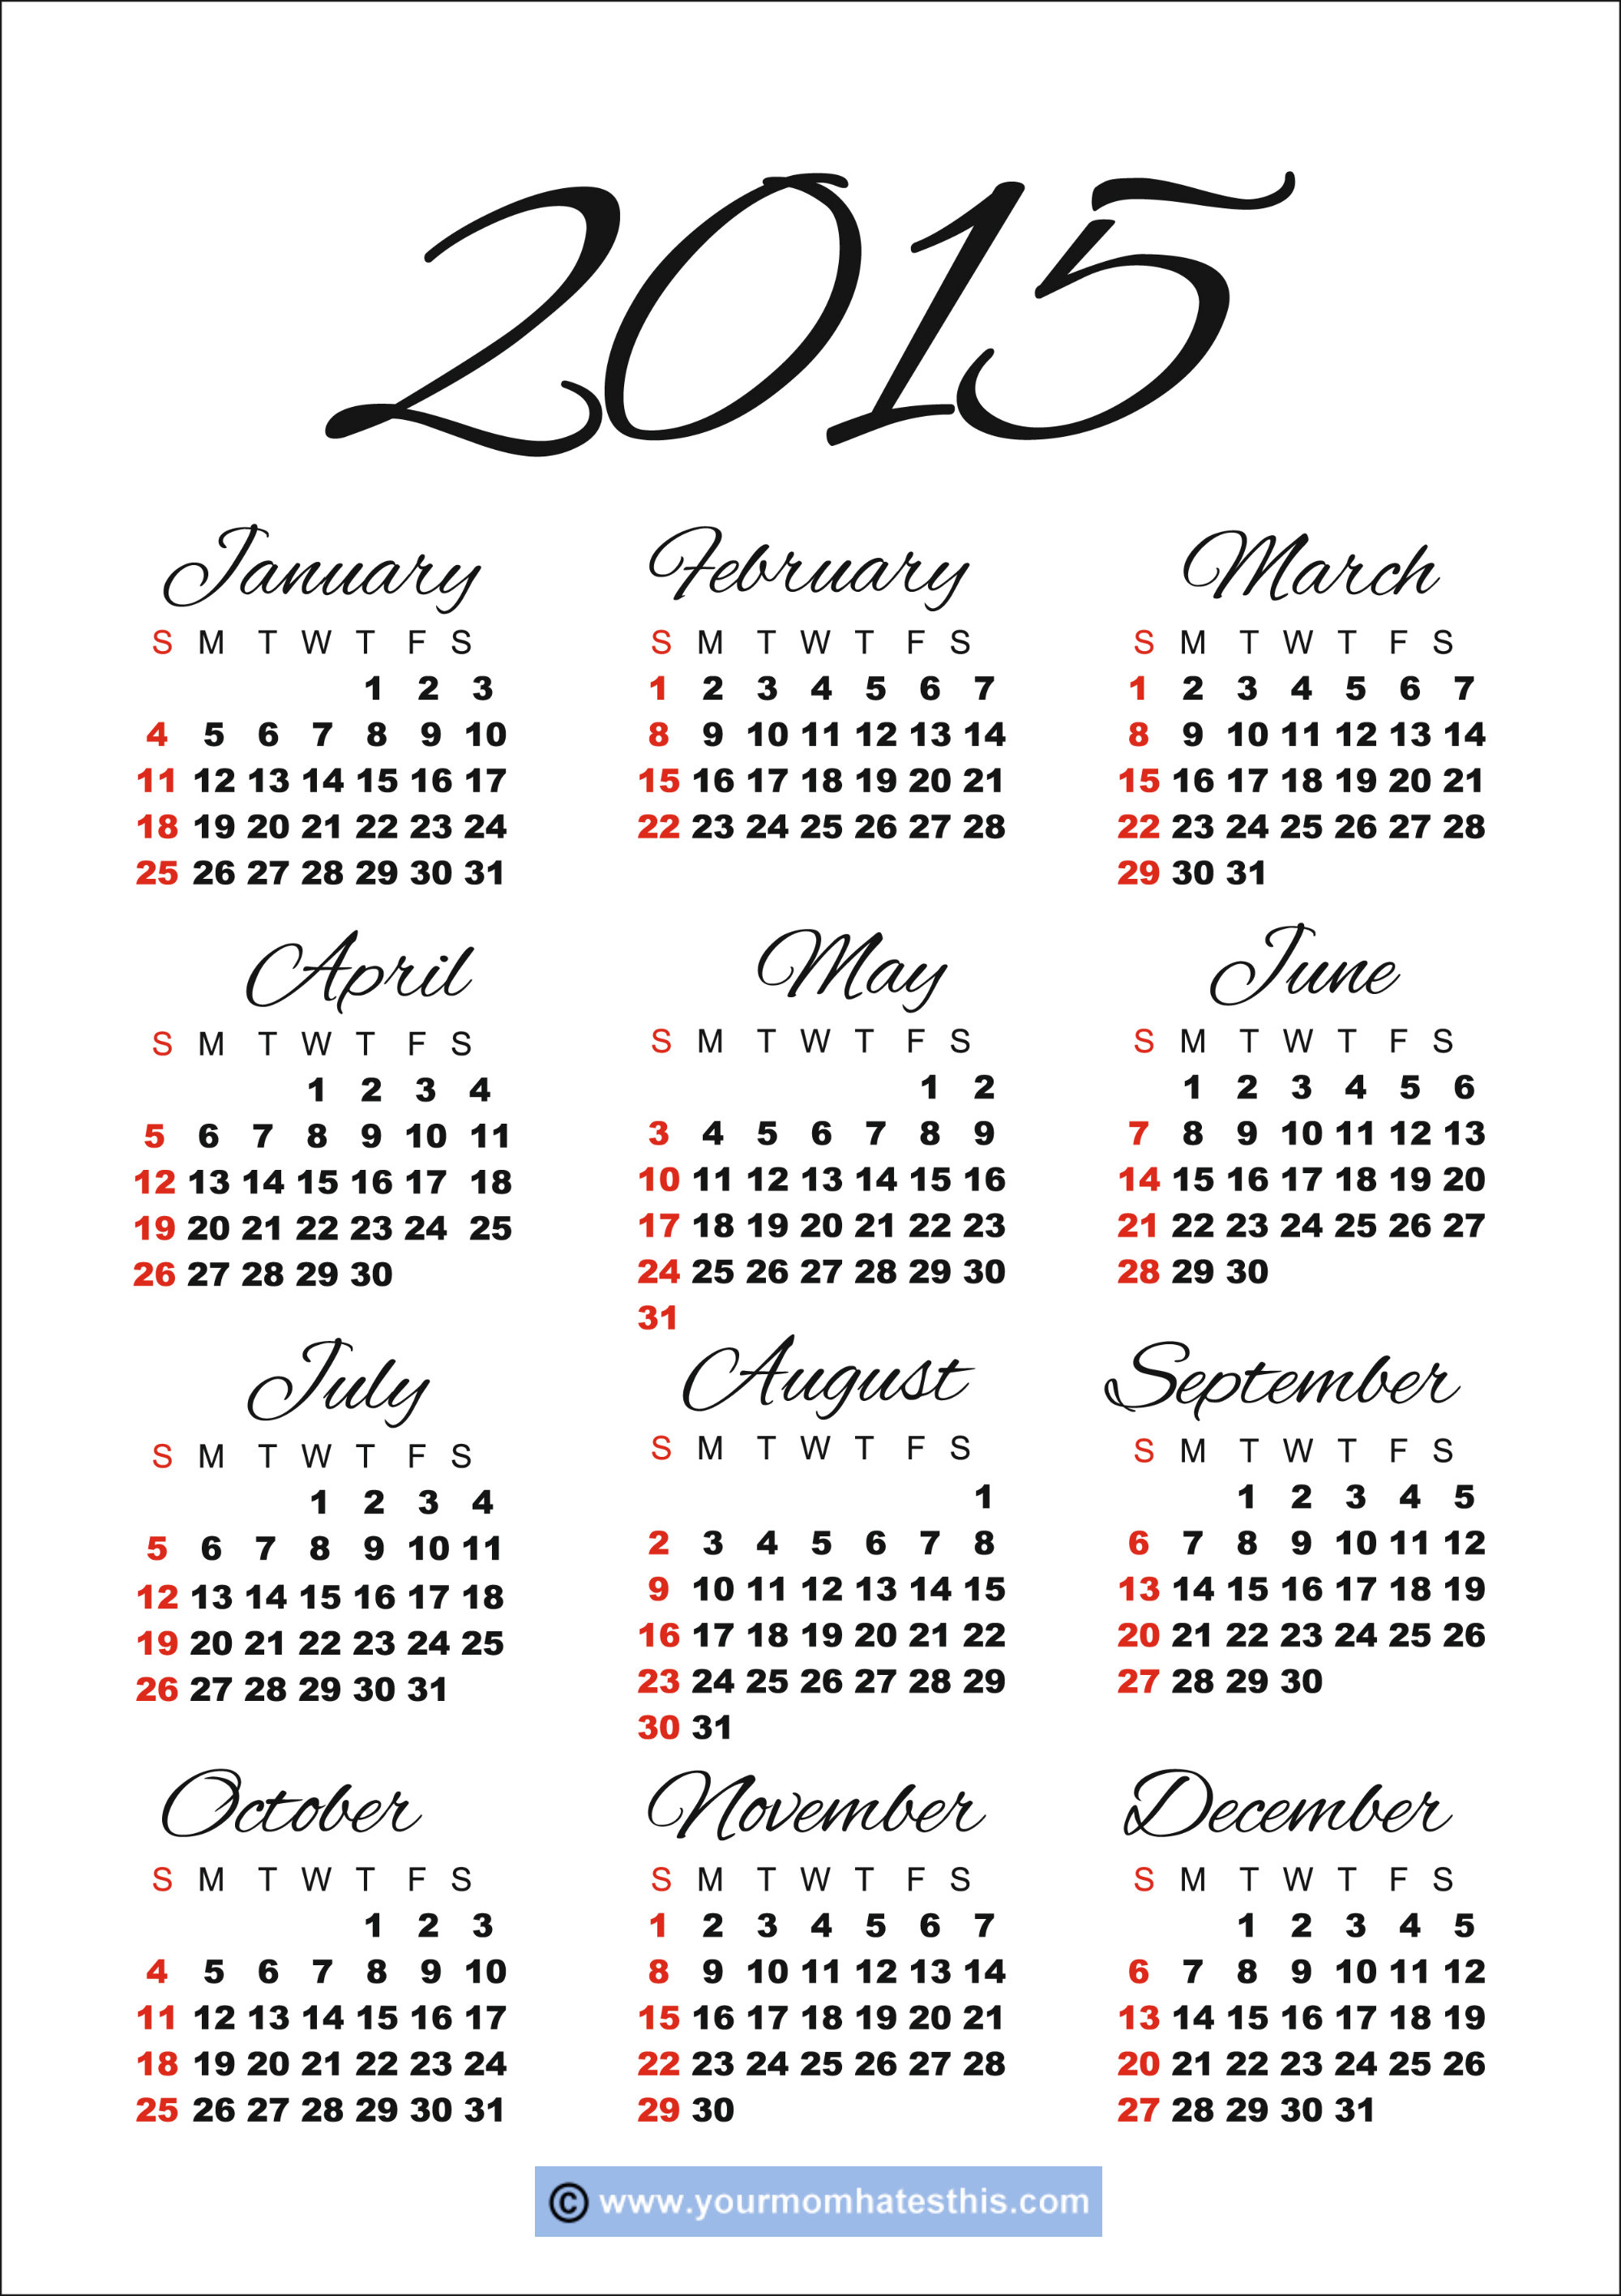 6 Images of 2015 Printable Calendar